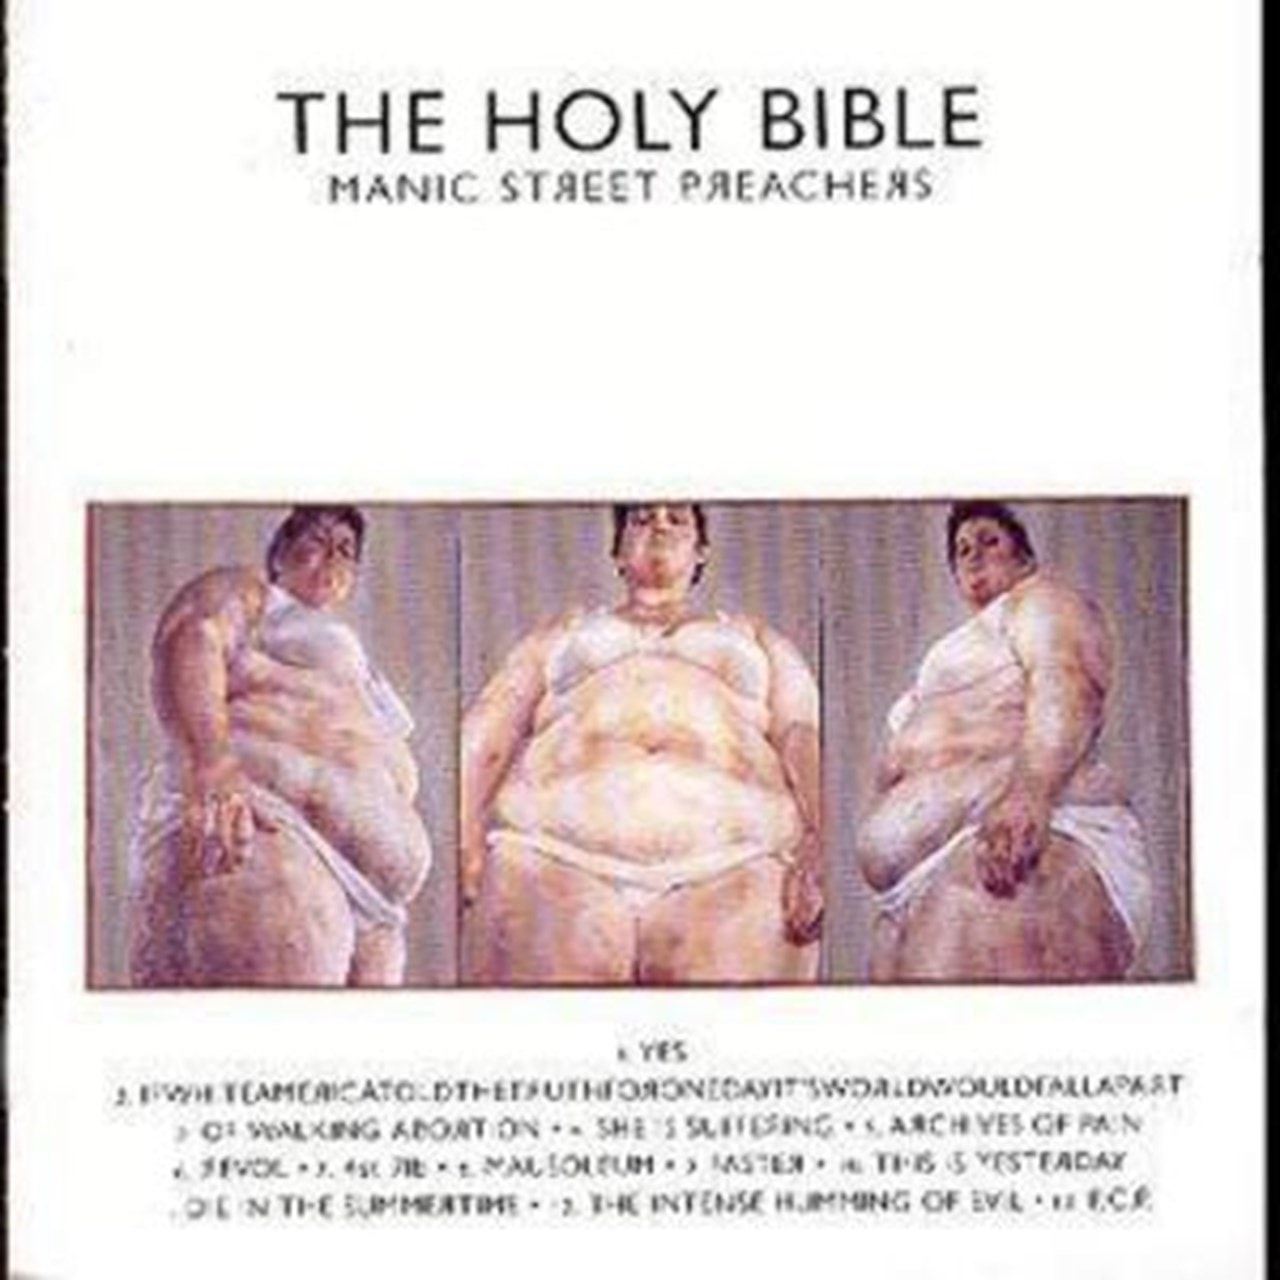 The Holy Bible - 1